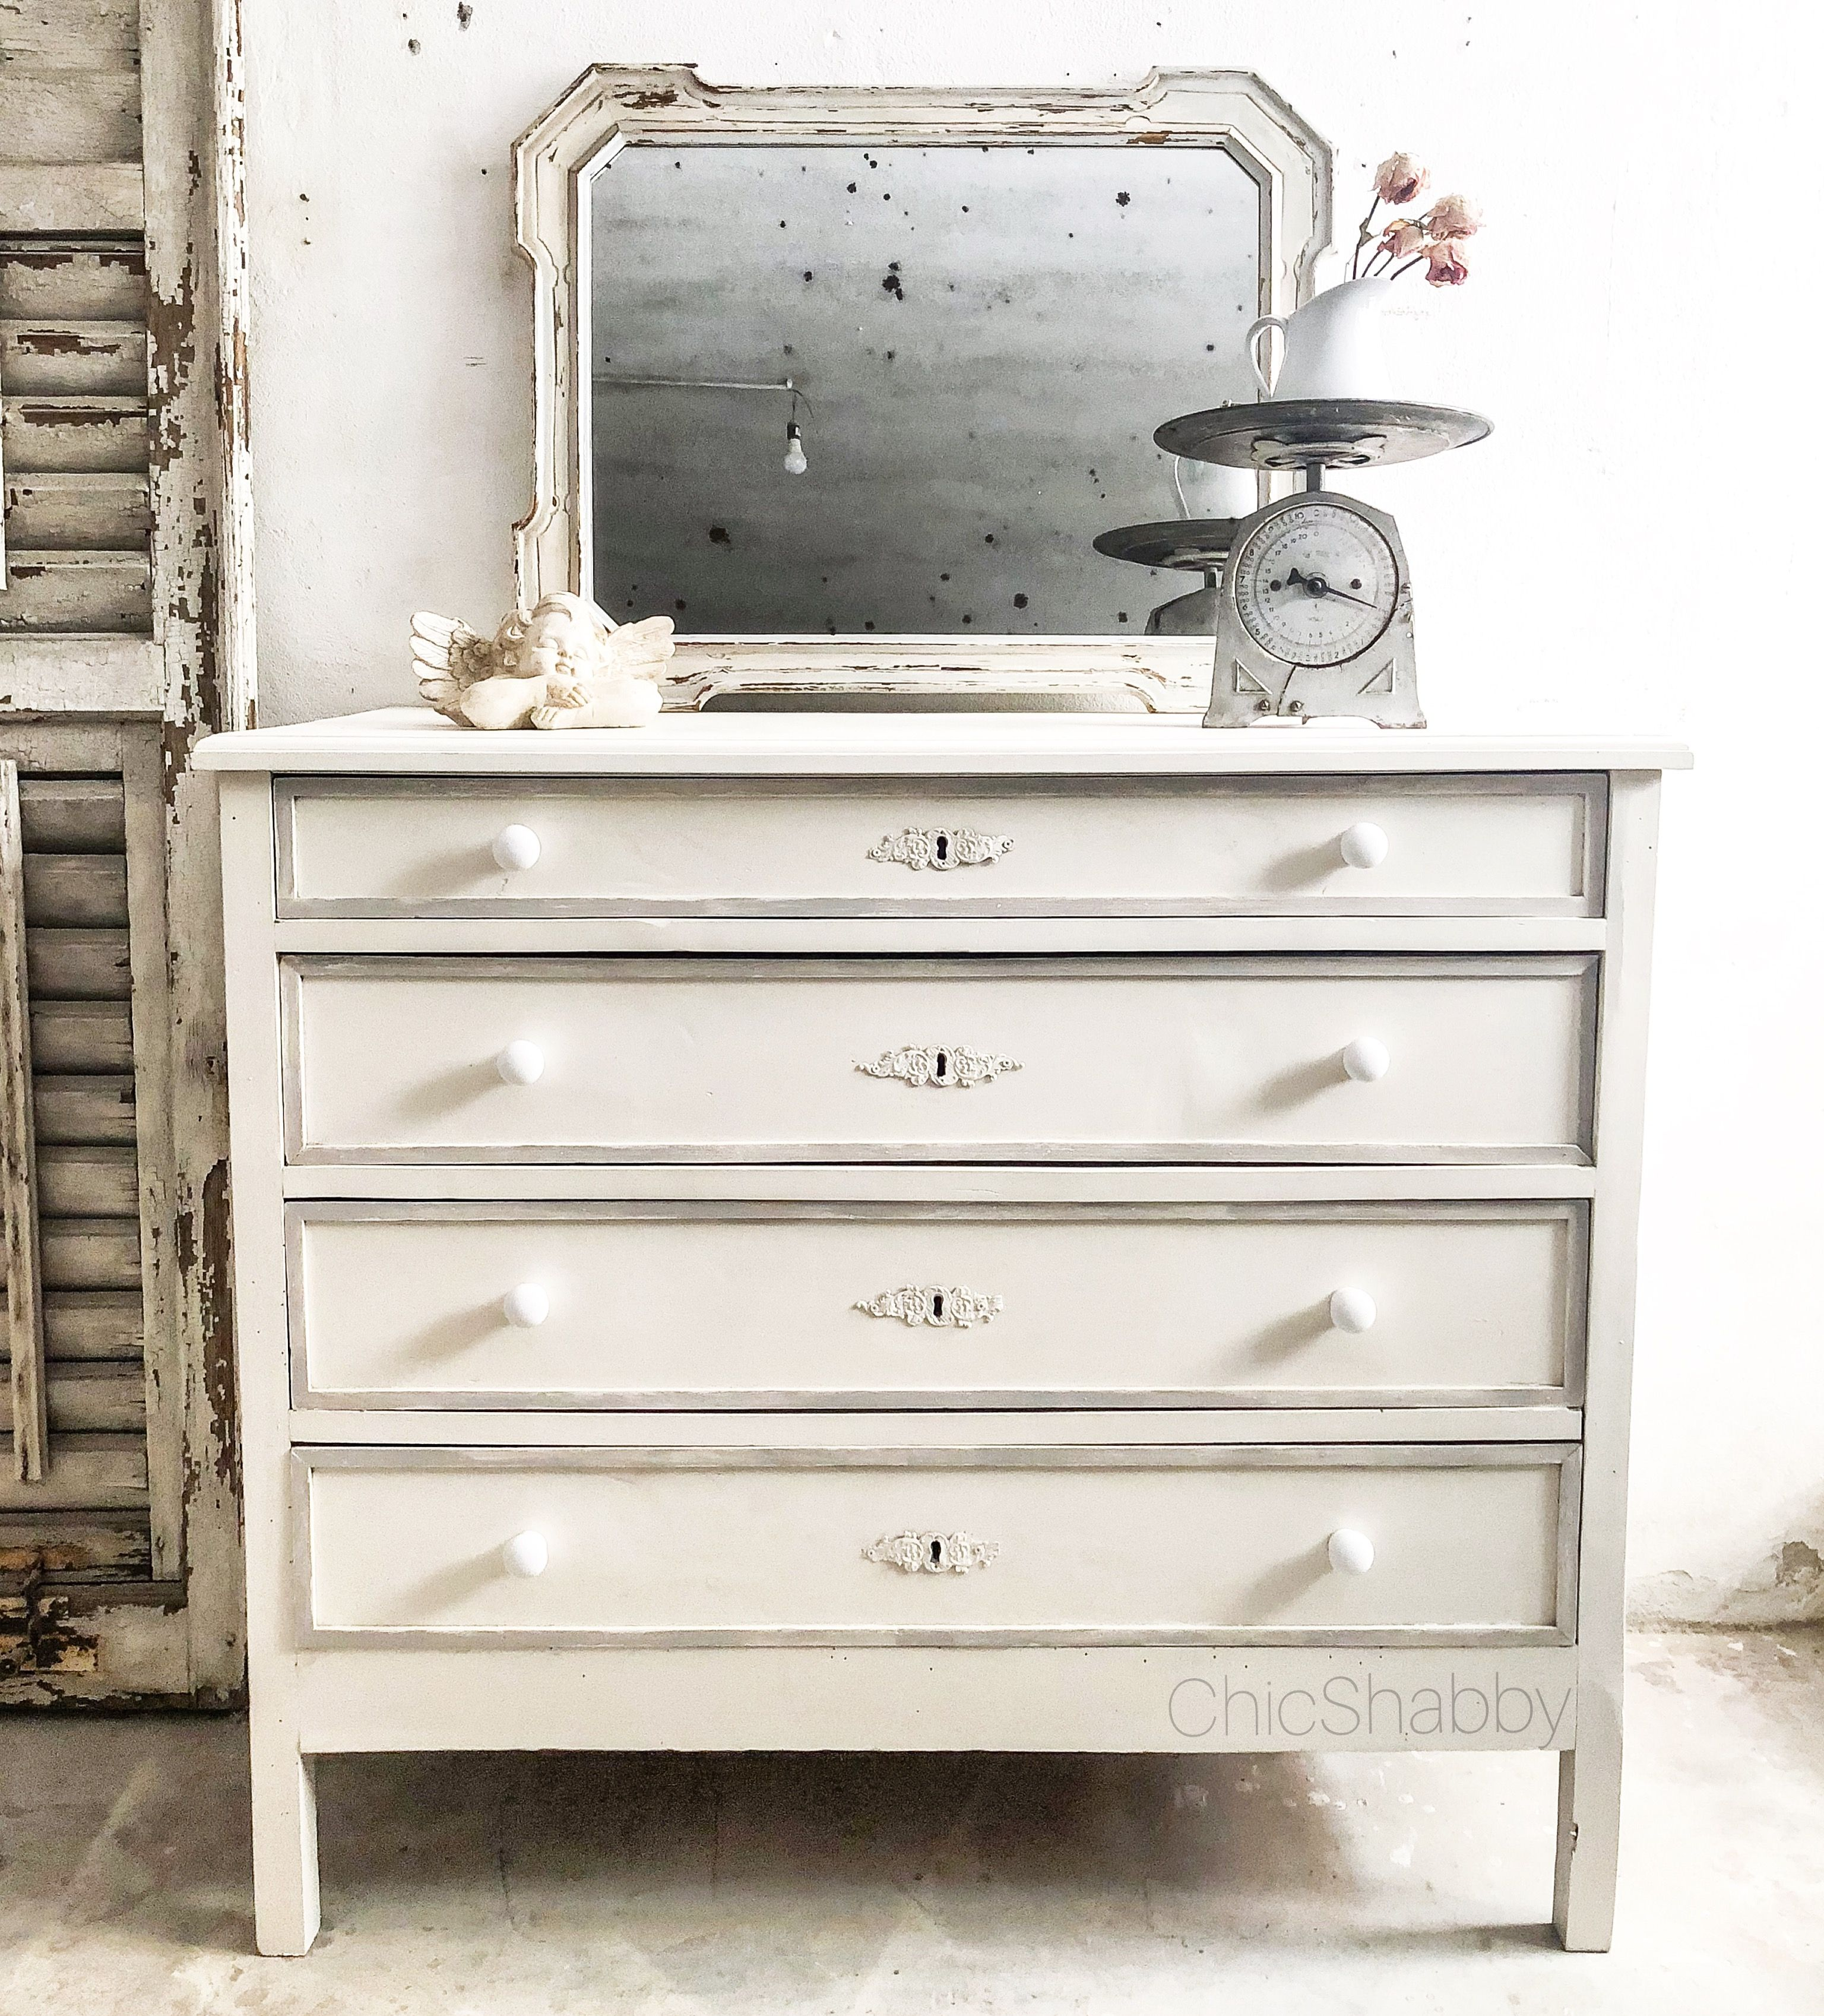 Cassettiera shabby chic antique Chest of drawers shabby chic ...